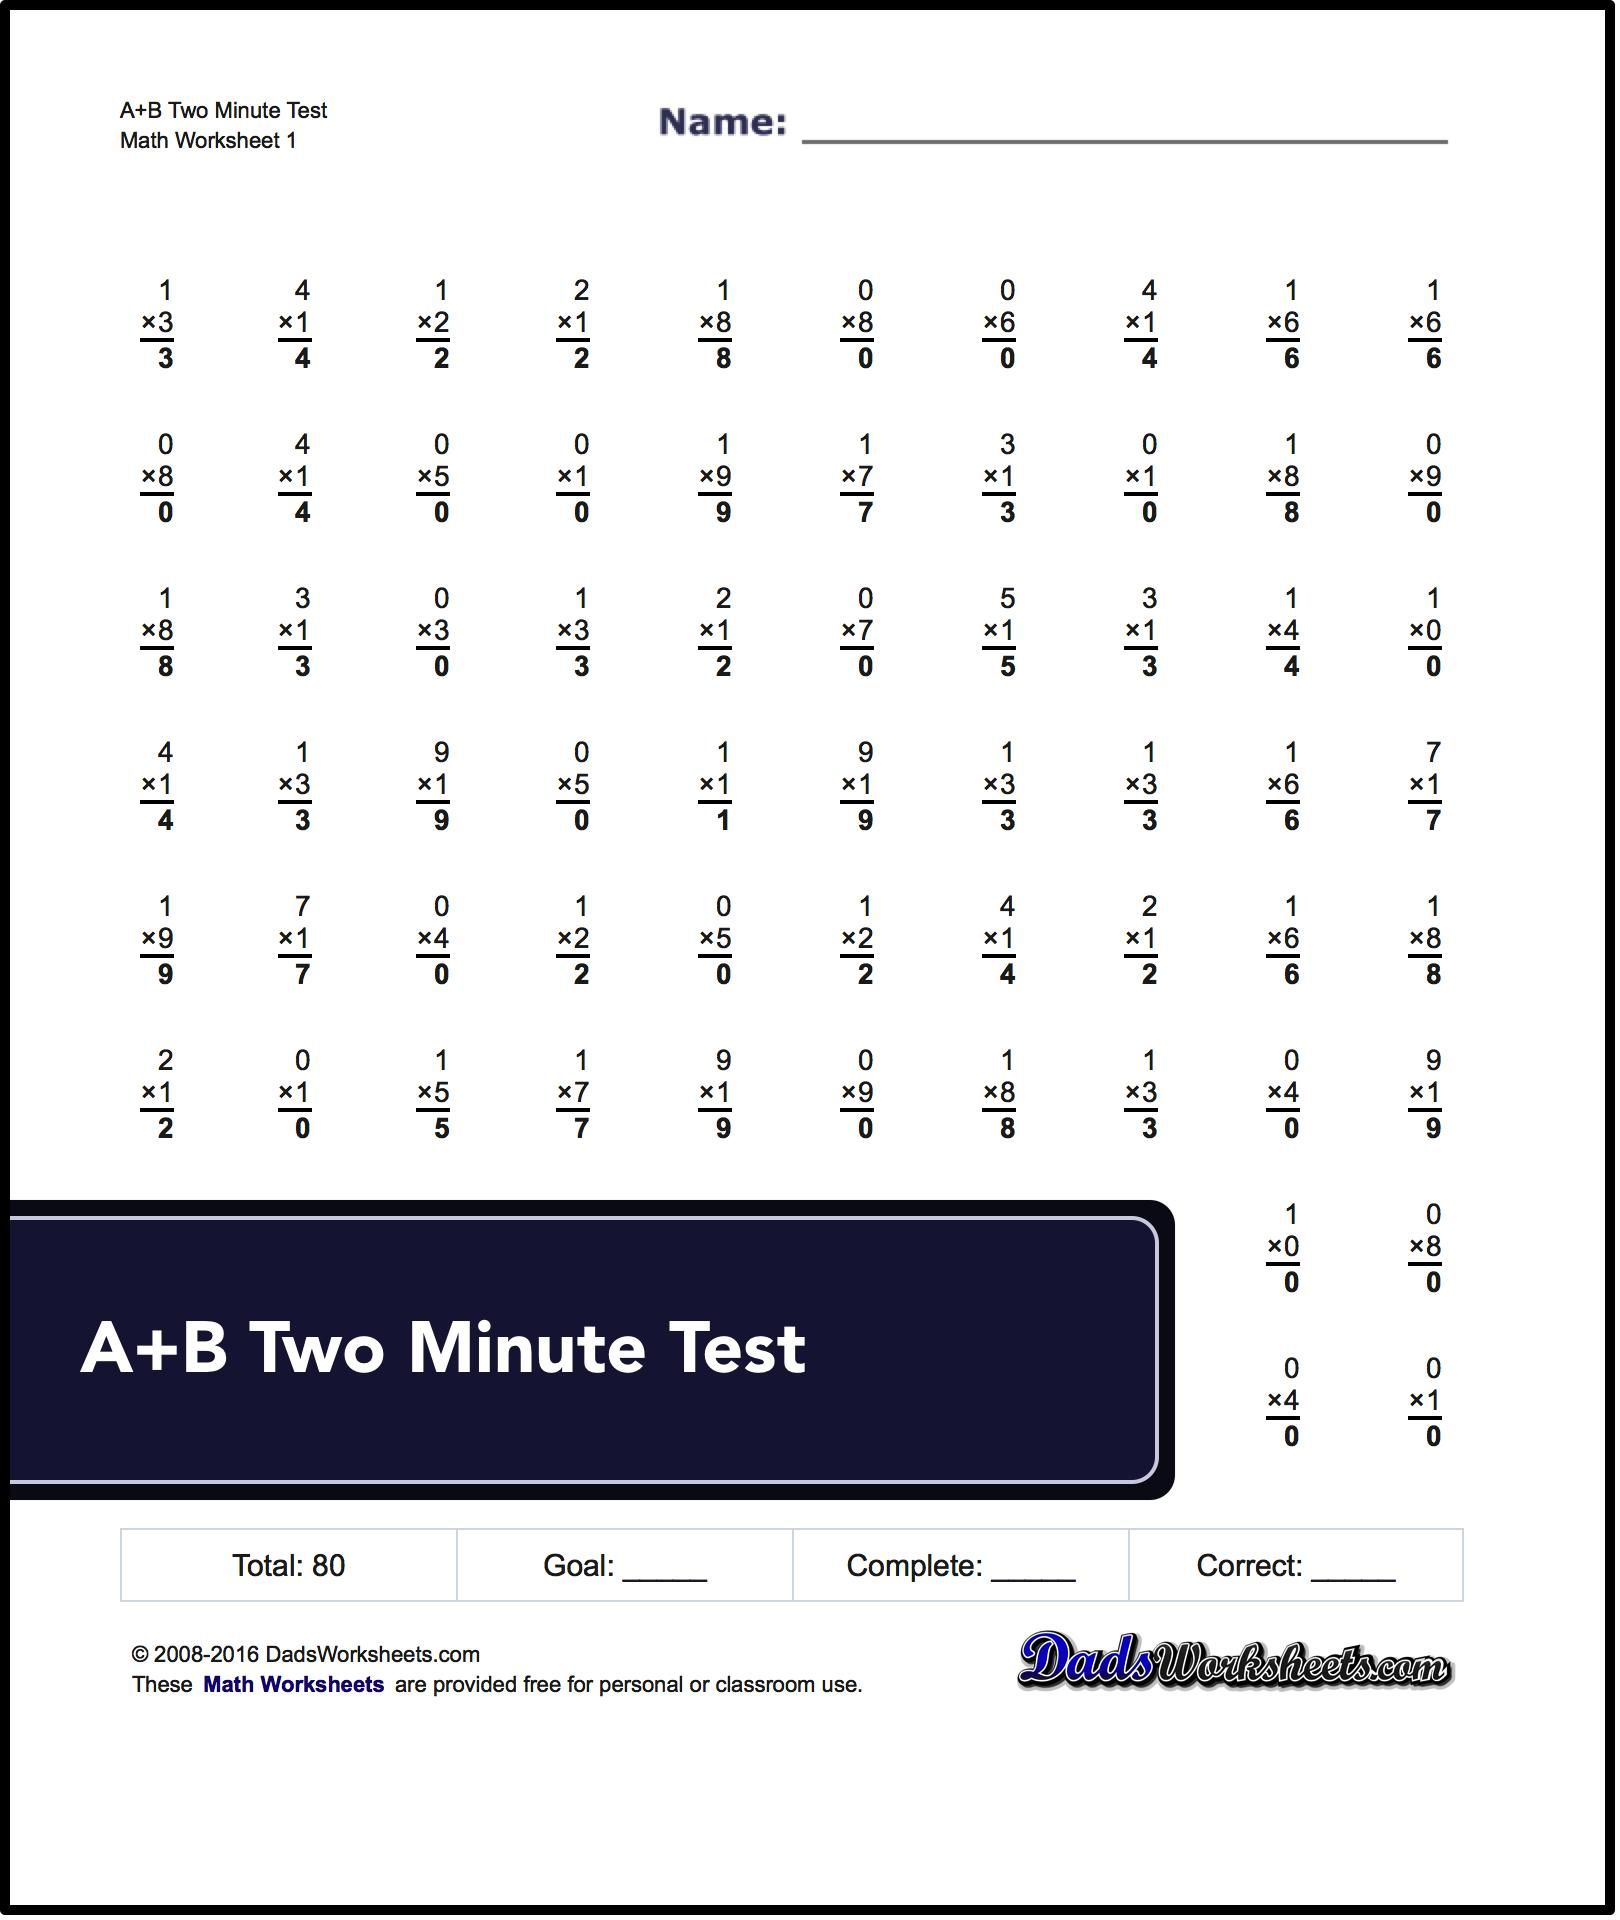 worksheet One Minute Multiplication Drills these two minute multiplication worksheets are just a few of the thousands freely printable worksheets